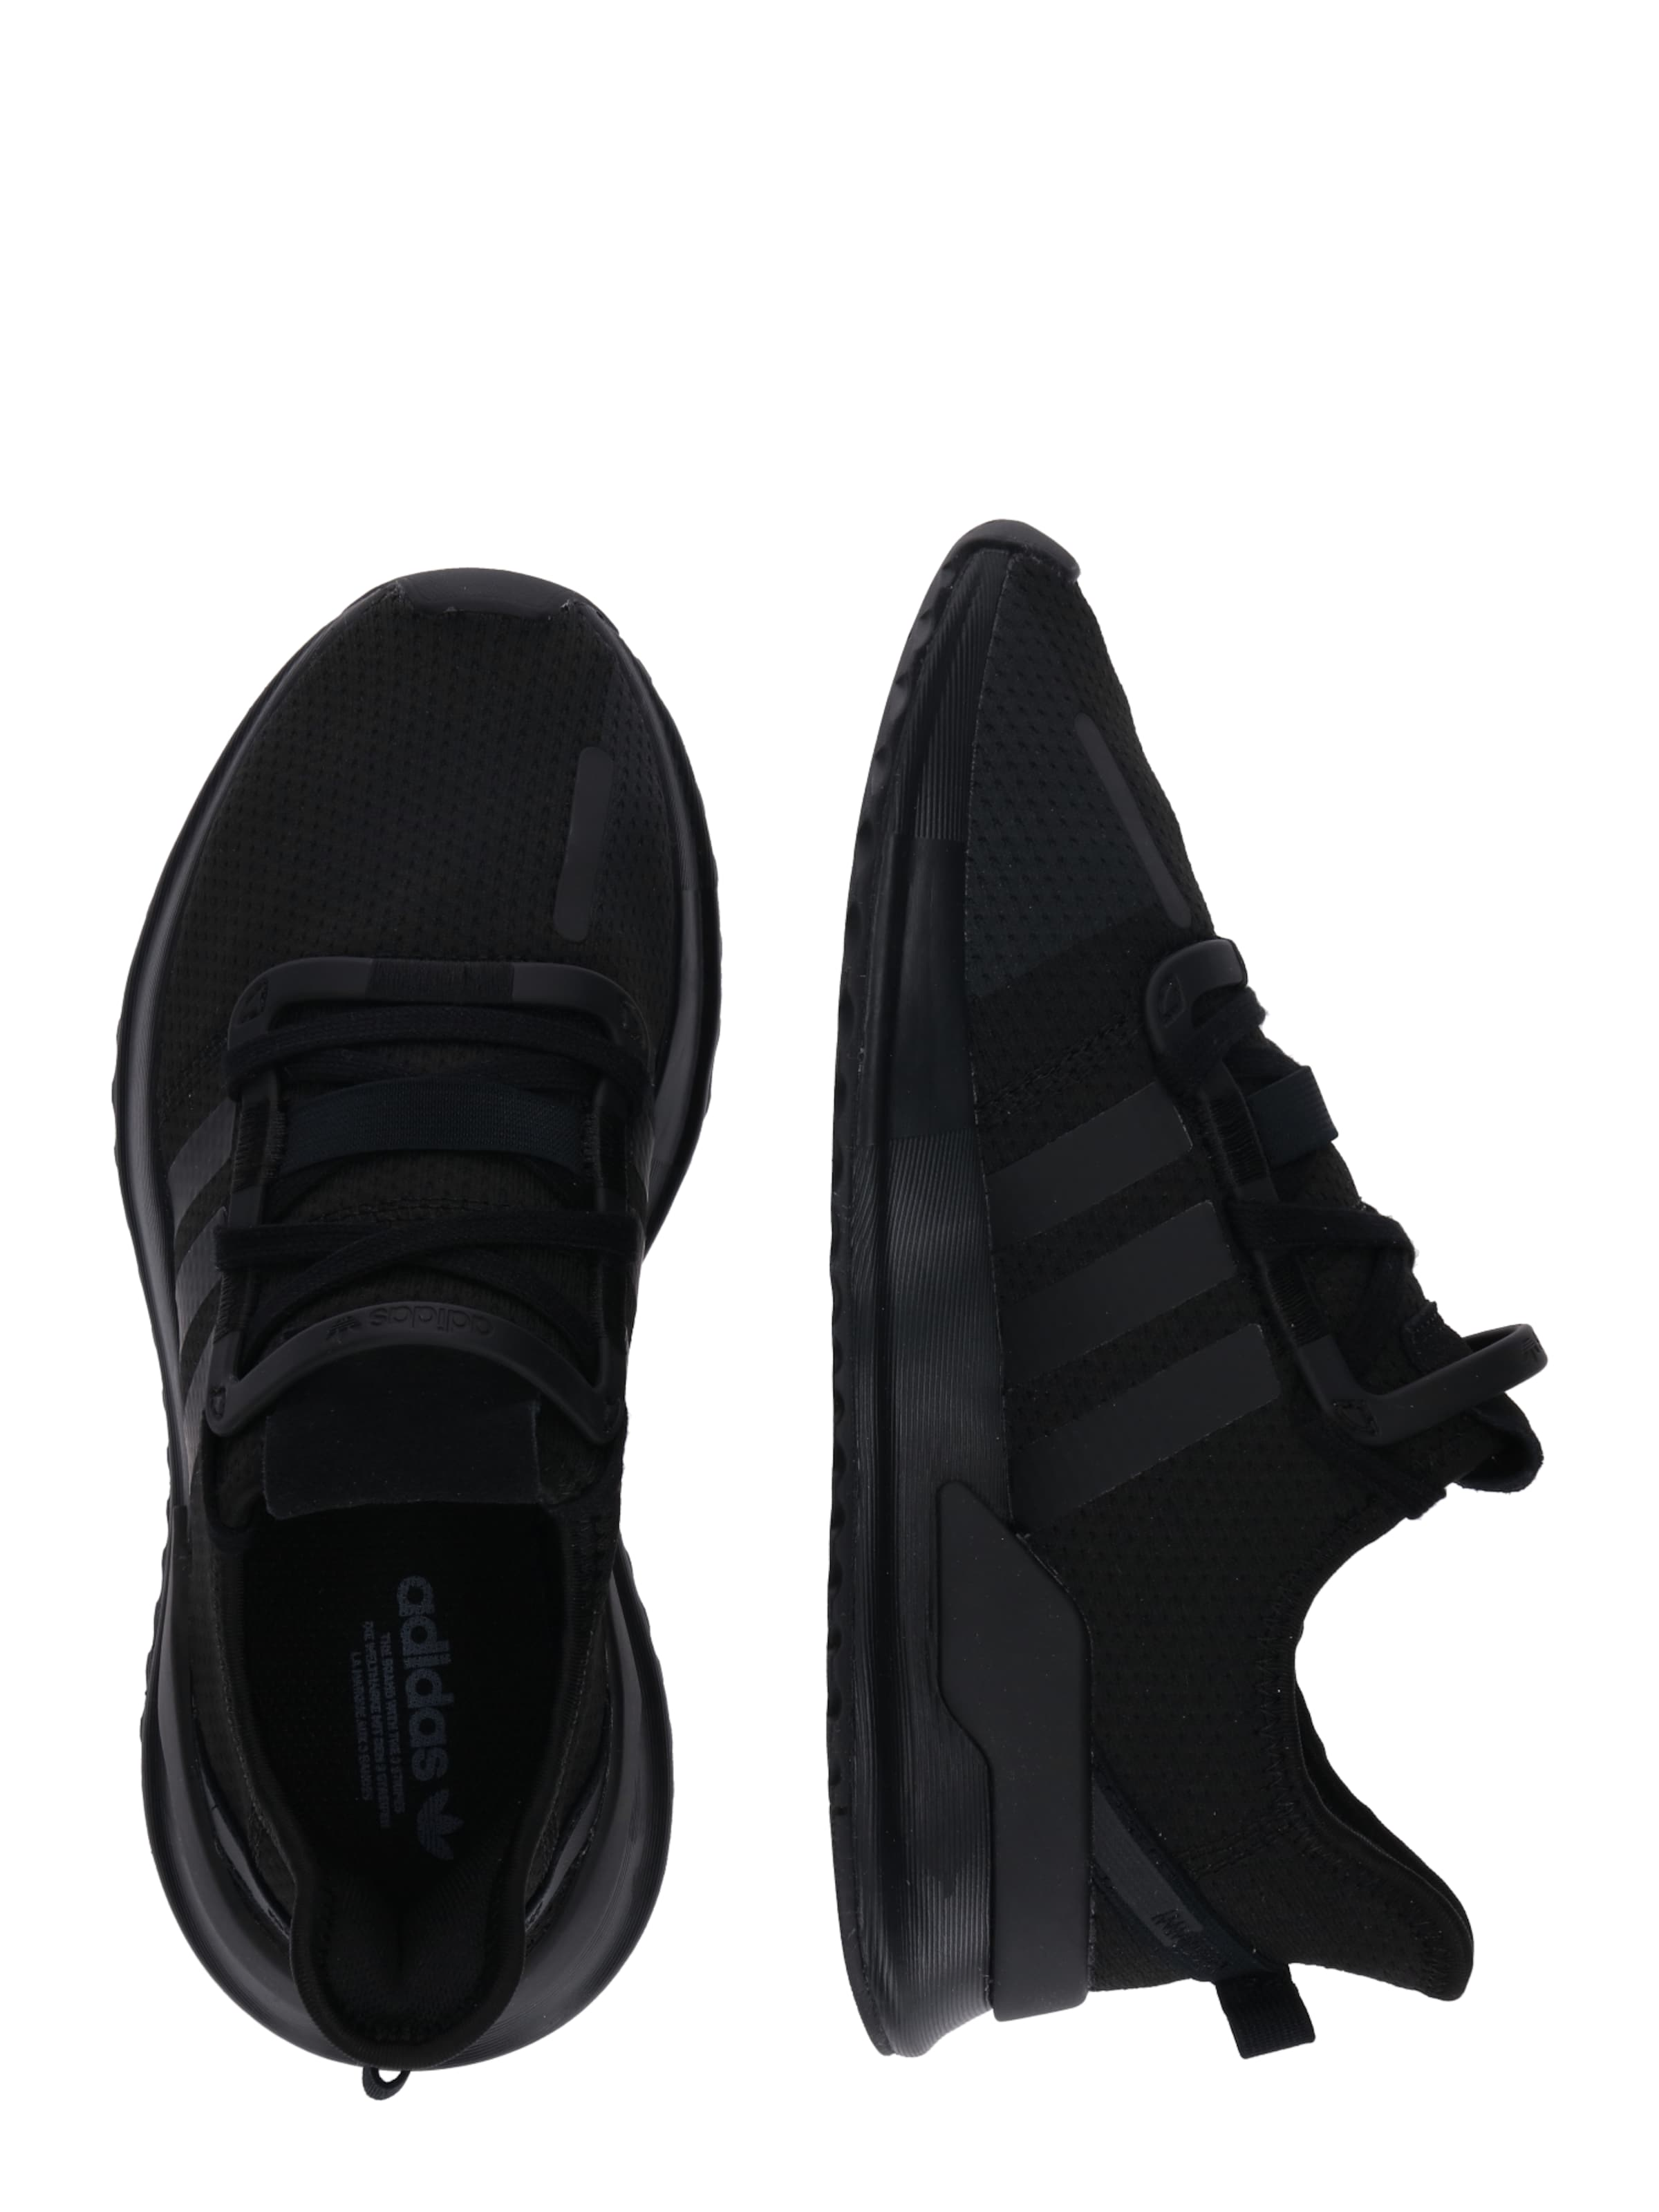 In Sneaker Run' 'u Adidas Schwarz Originals path fby67gY